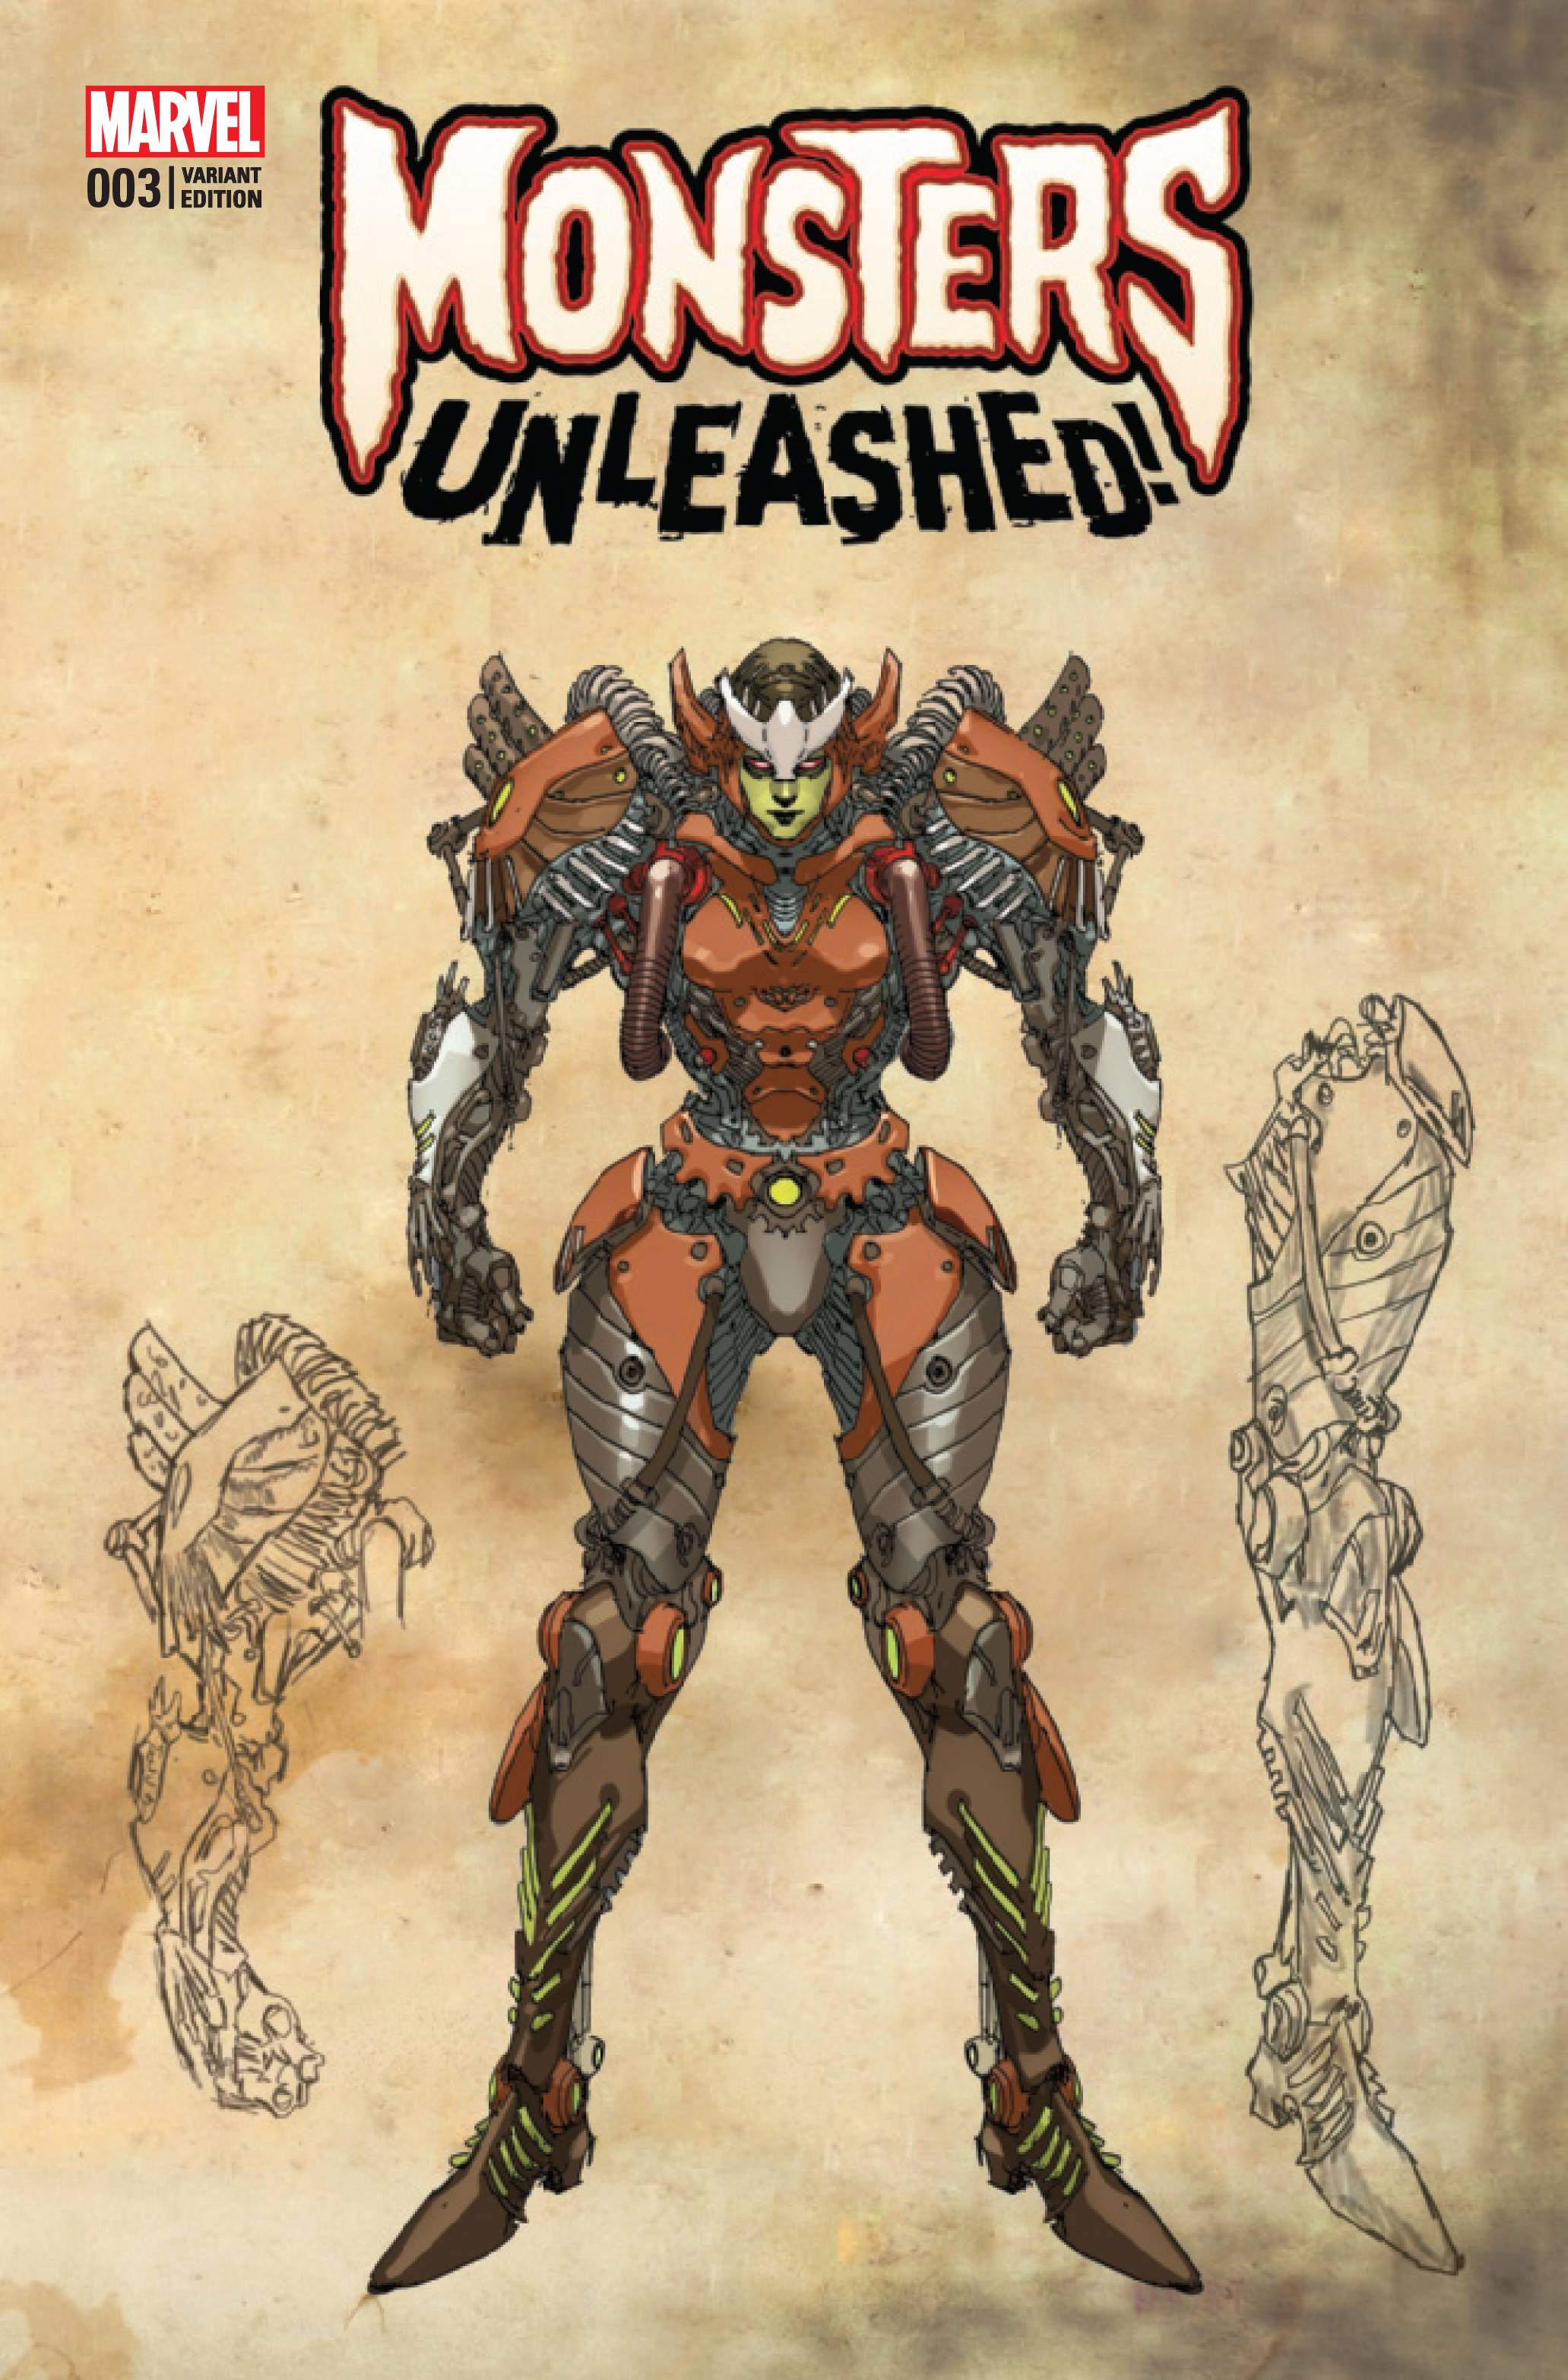 MONSTERS UNLEASHED #3